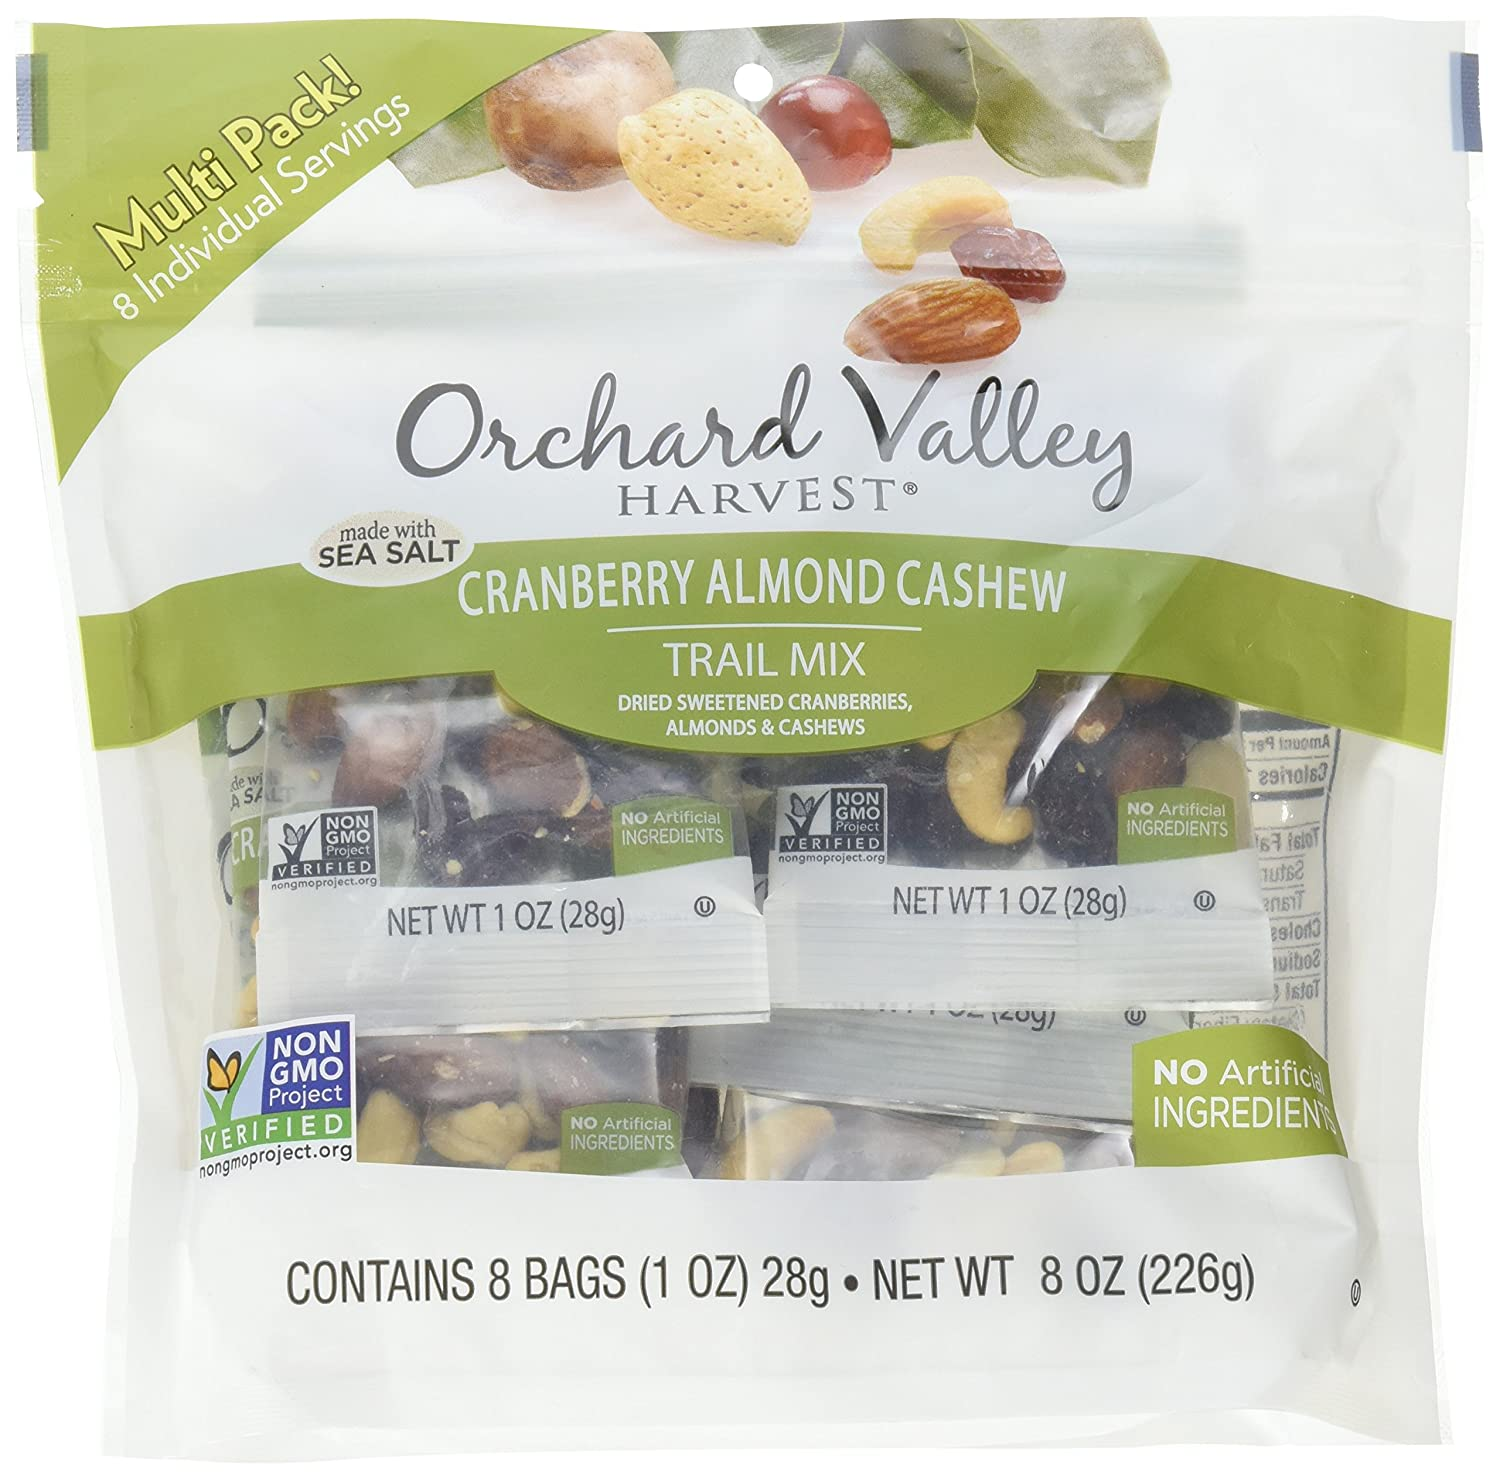 Orchard Valley Harvest, Trail Mix Cranberry Almond Cashew, 8 Ounce